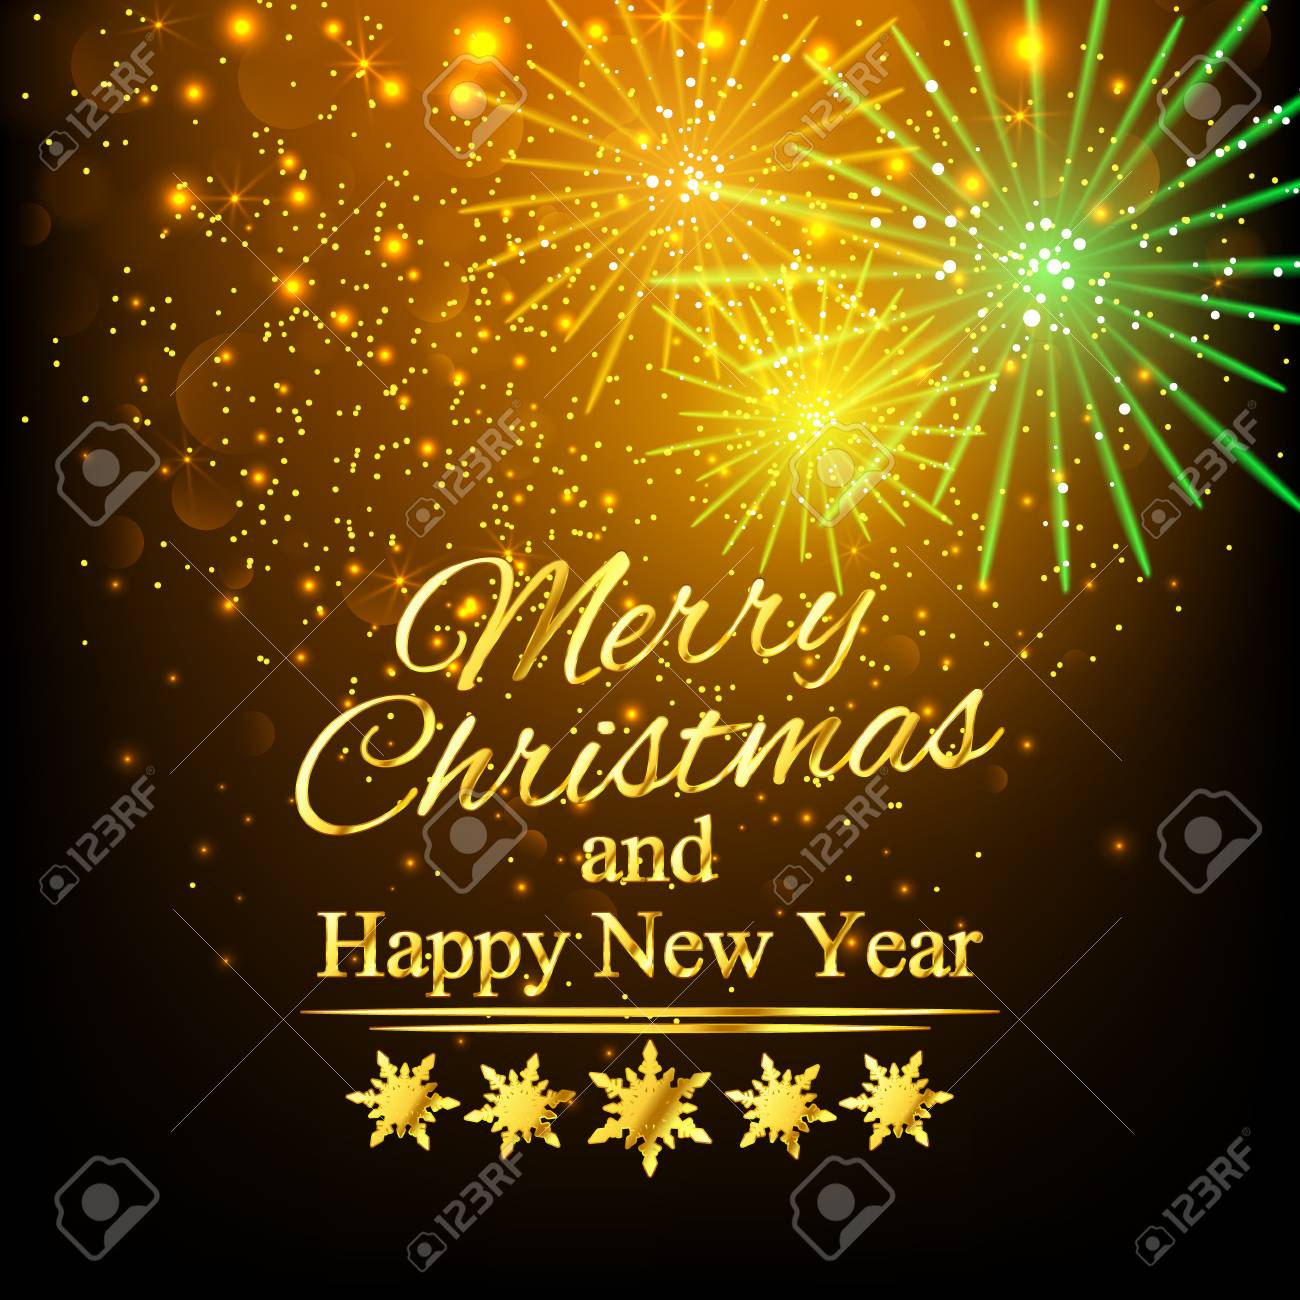 Merry Christmas And Happy New Year Greeting Card Golden Background